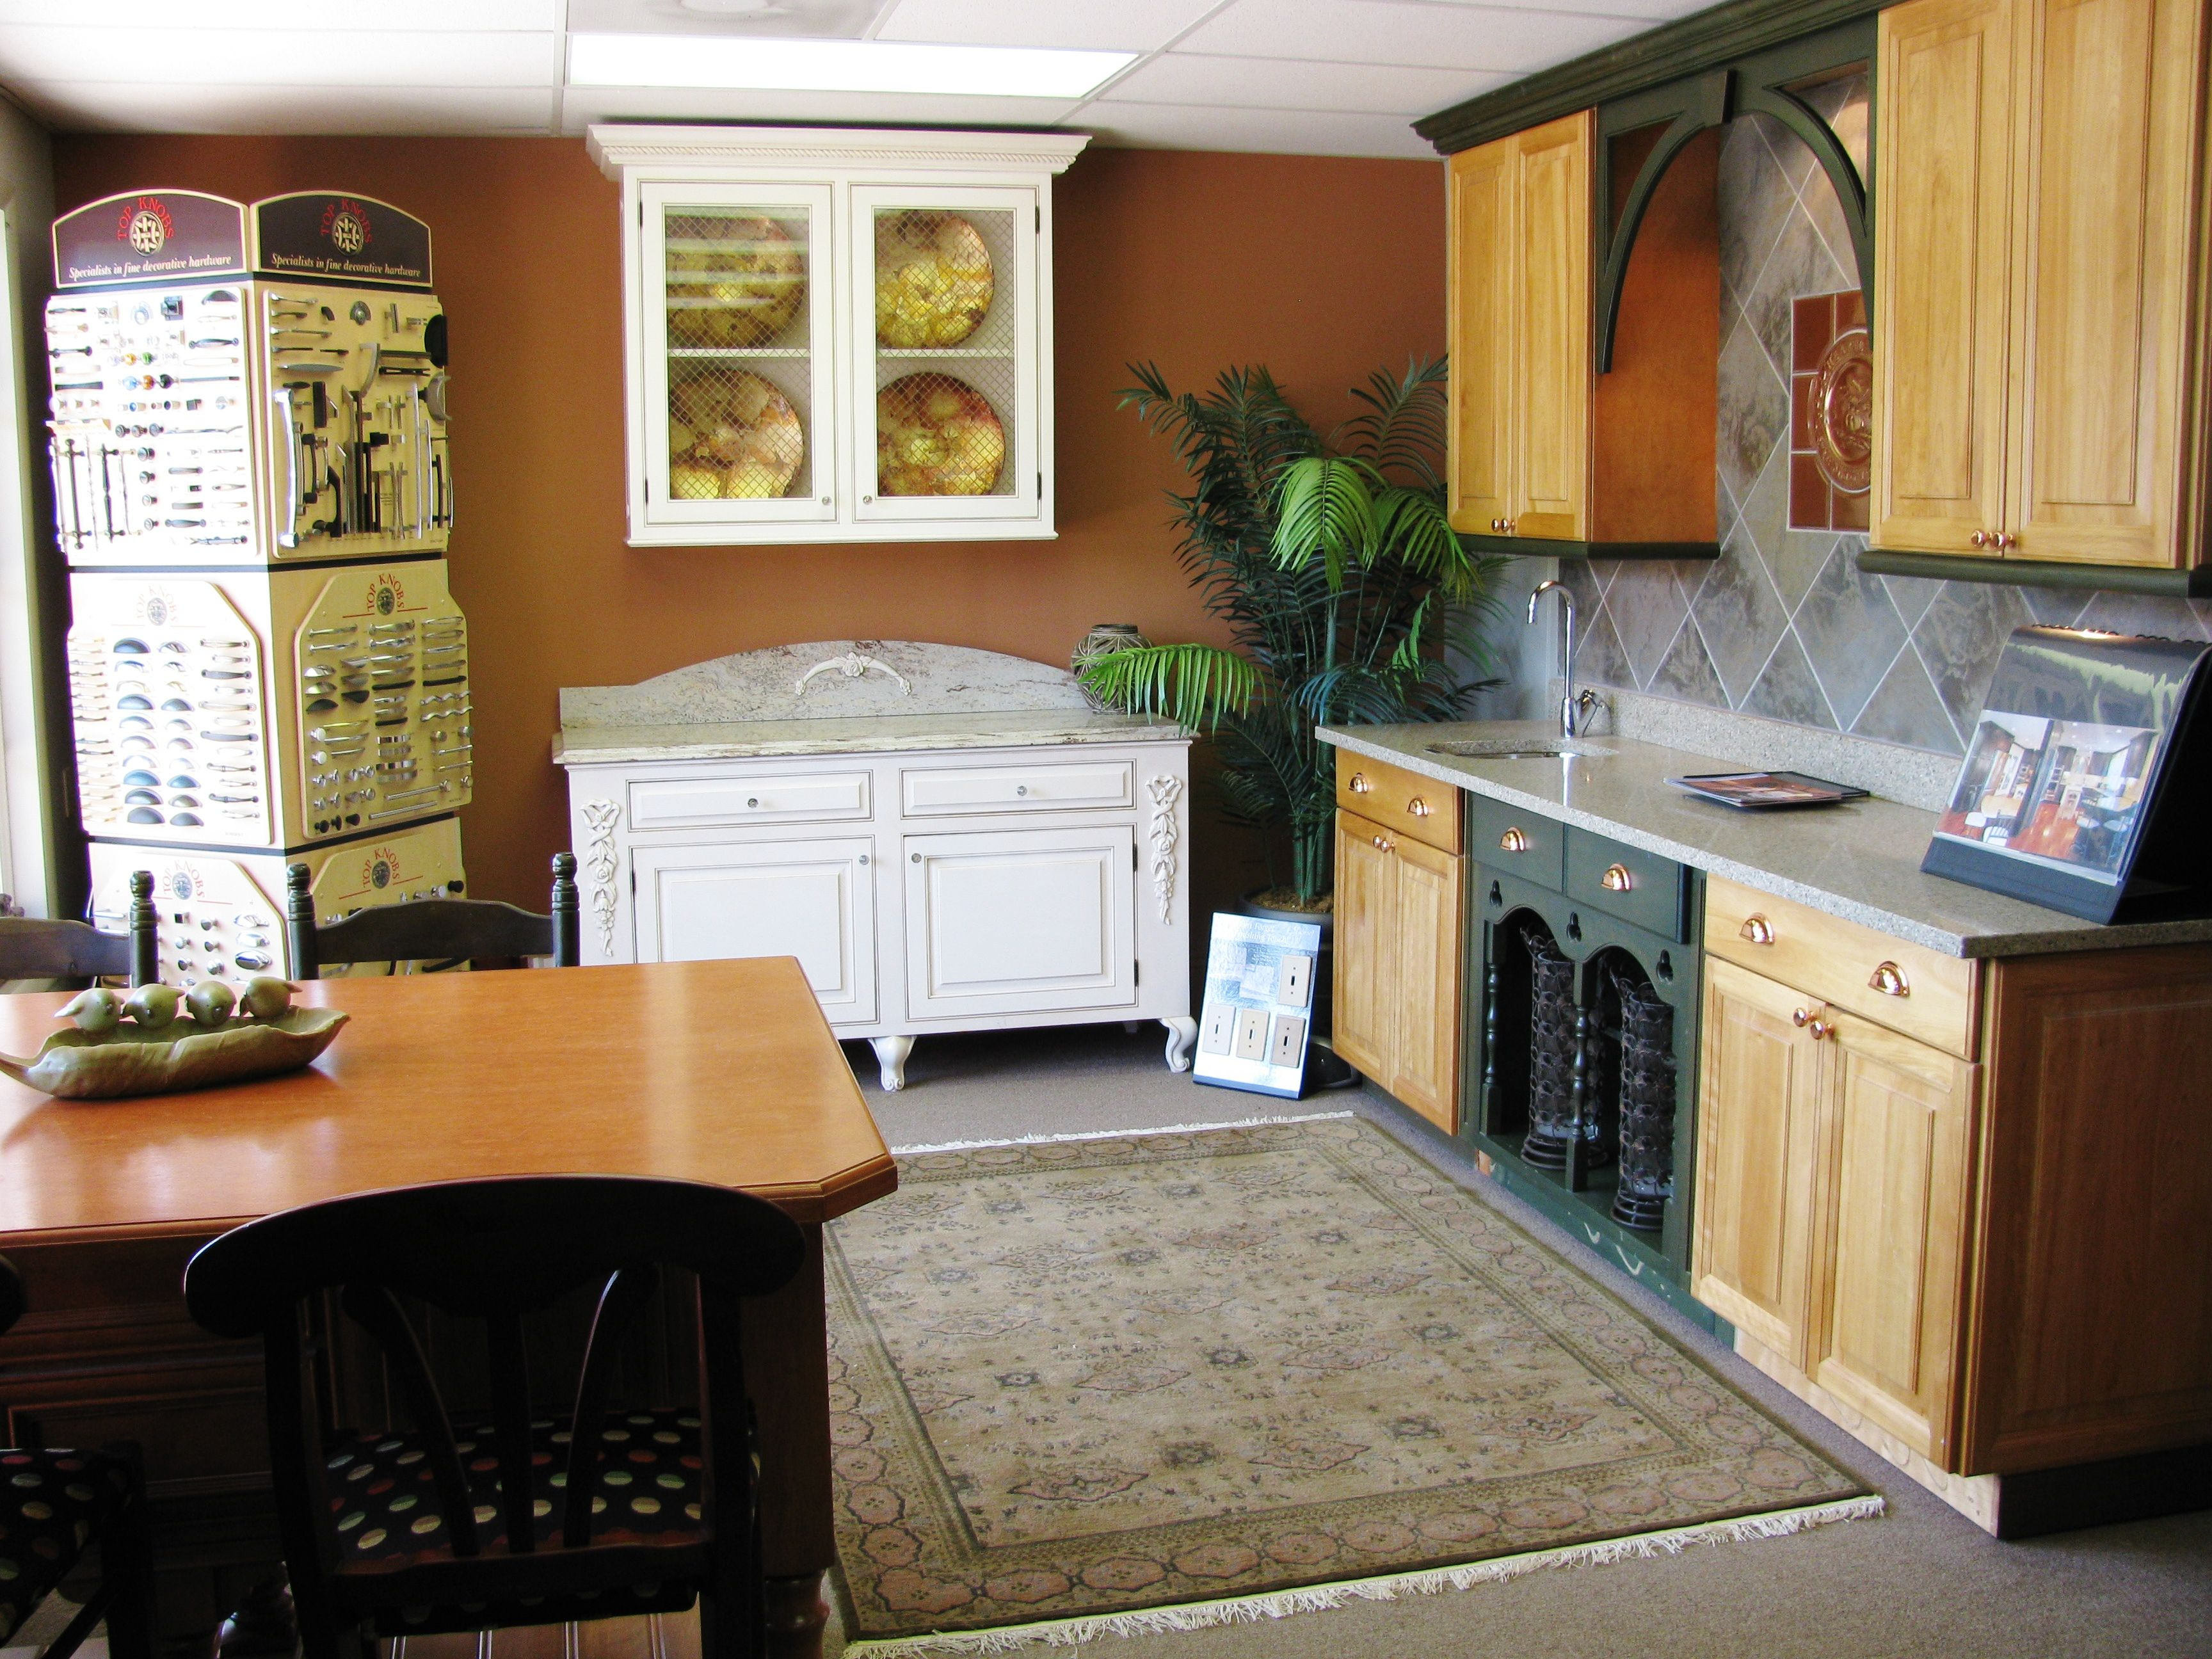 Red Birch Cabinets, Painted Cabinets, Wood Countertop ...